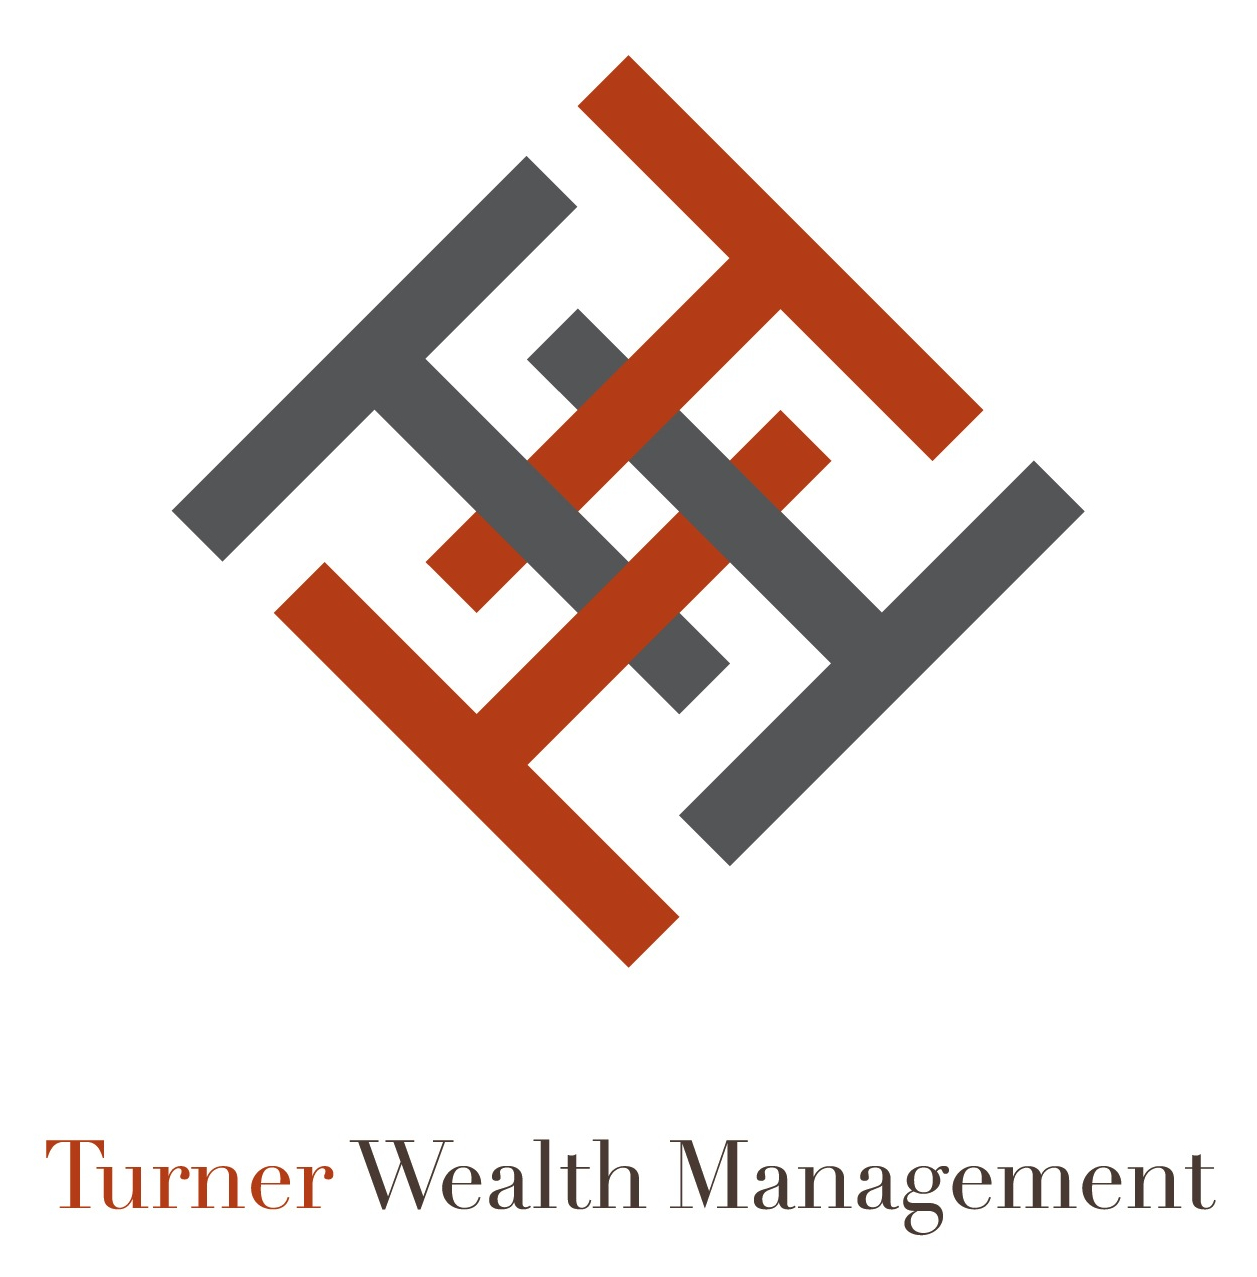 Logo Design, Turner Wealth Management, Austin, Texas